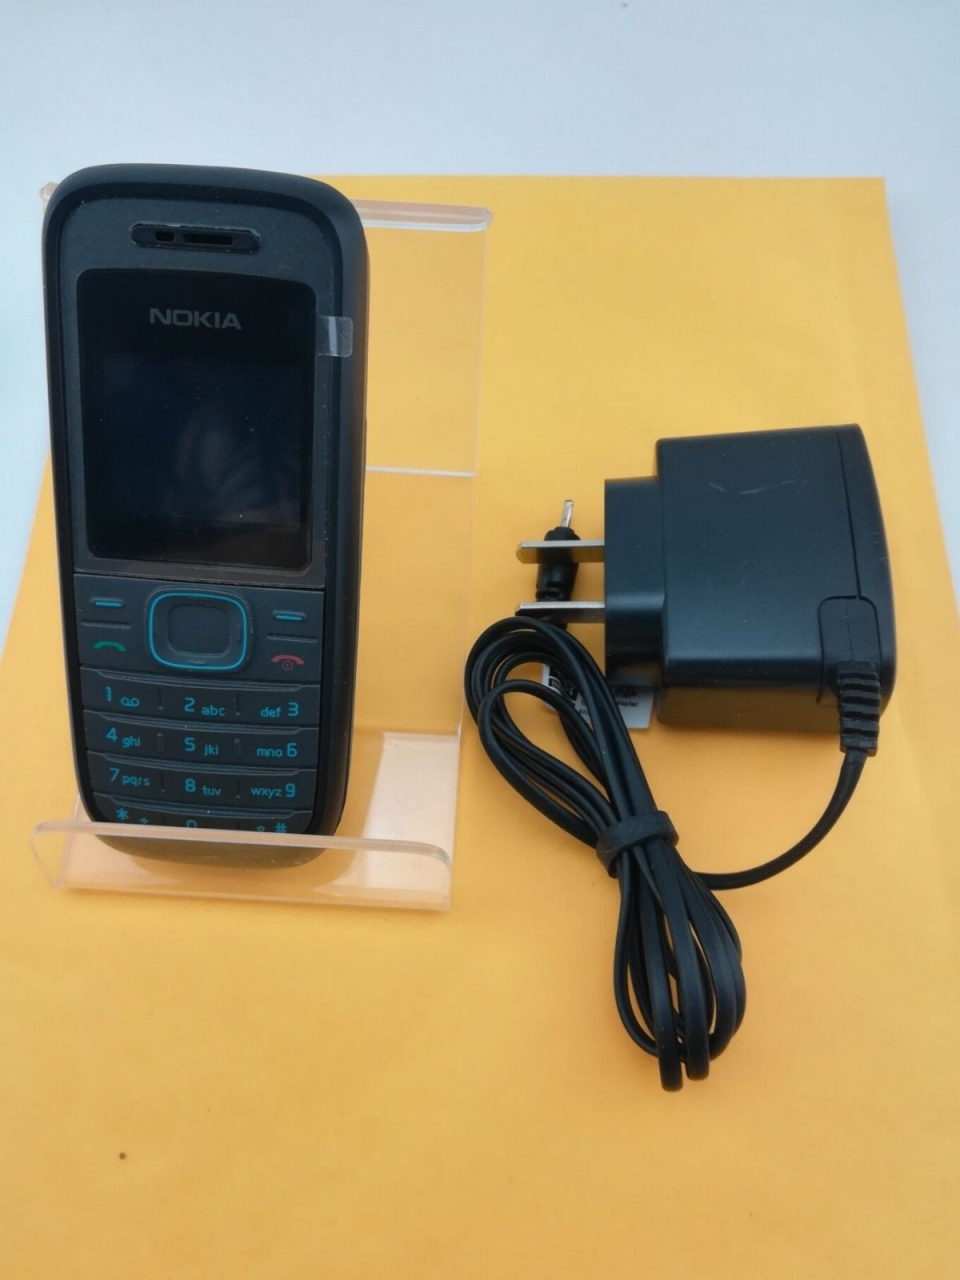 Refurbished phone Original Cellular Nokia 1208 Cheap phones GSM unlocked phone red 11